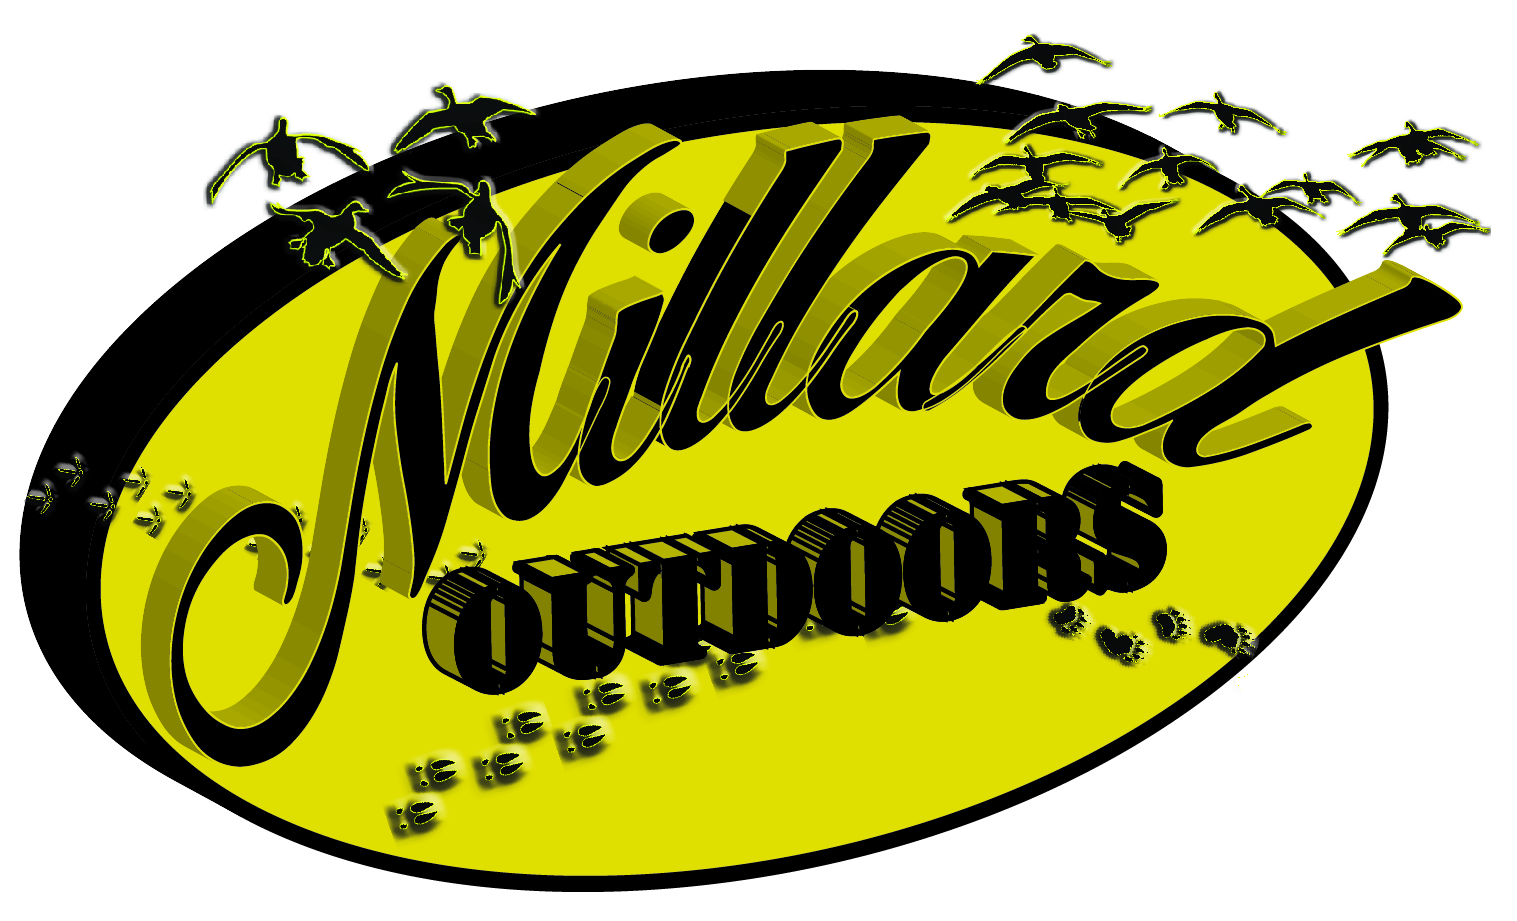 Millard Outdoors